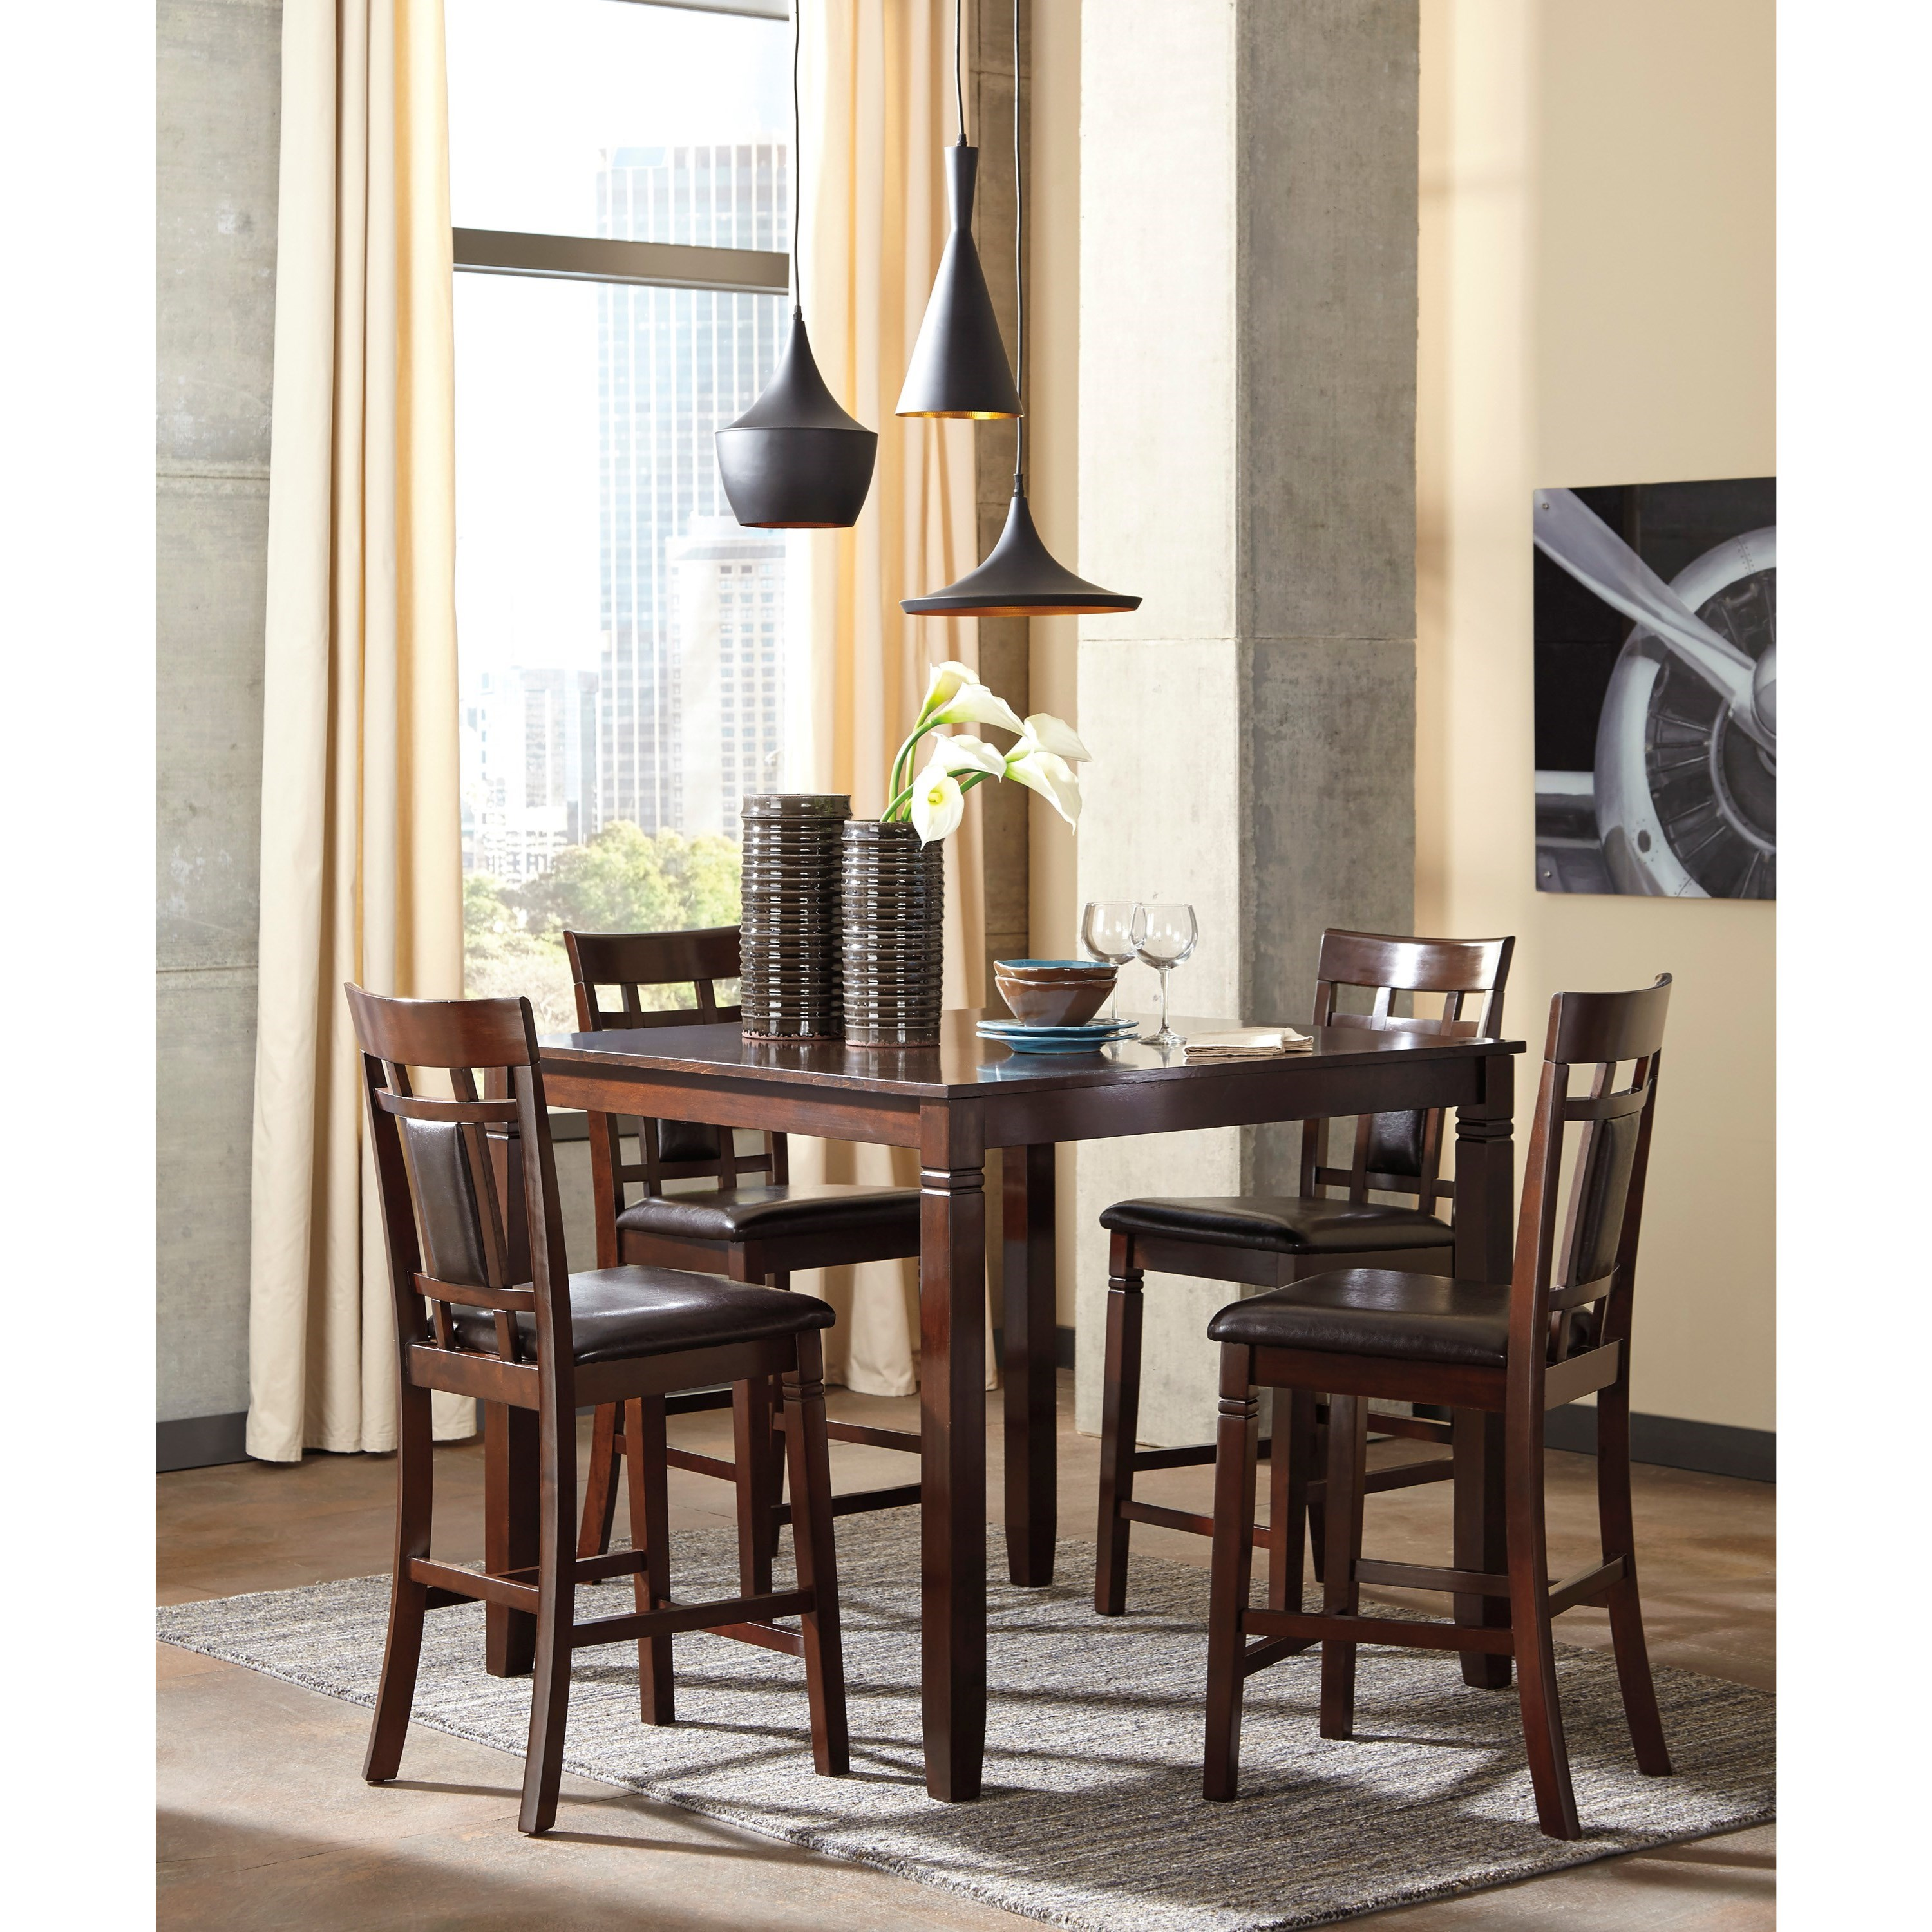 Ashley Signature Design Bennox Contemporary 5 Piece Dining Room Counter Table Set Dunk